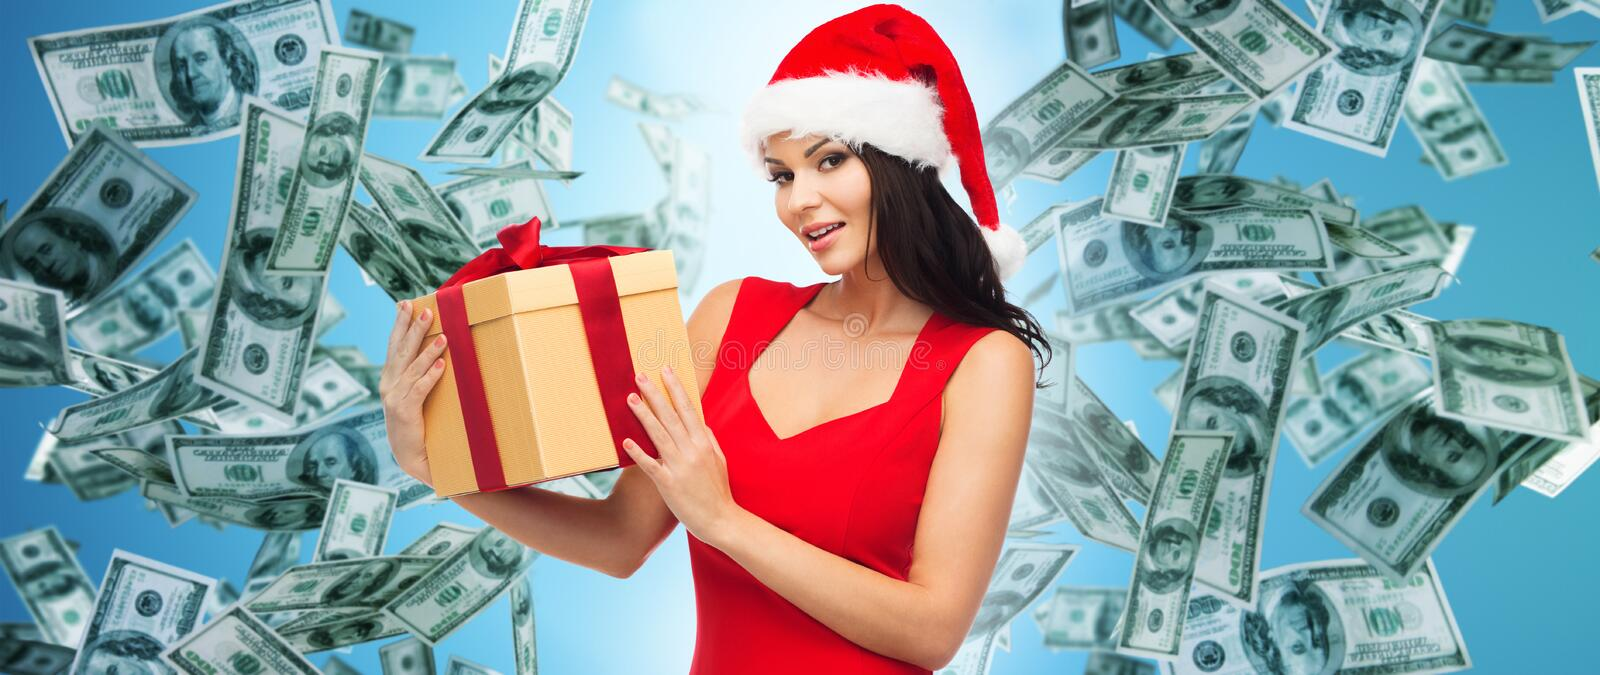 Beautiful woman in santa hat with gift over money royalty free stock photo